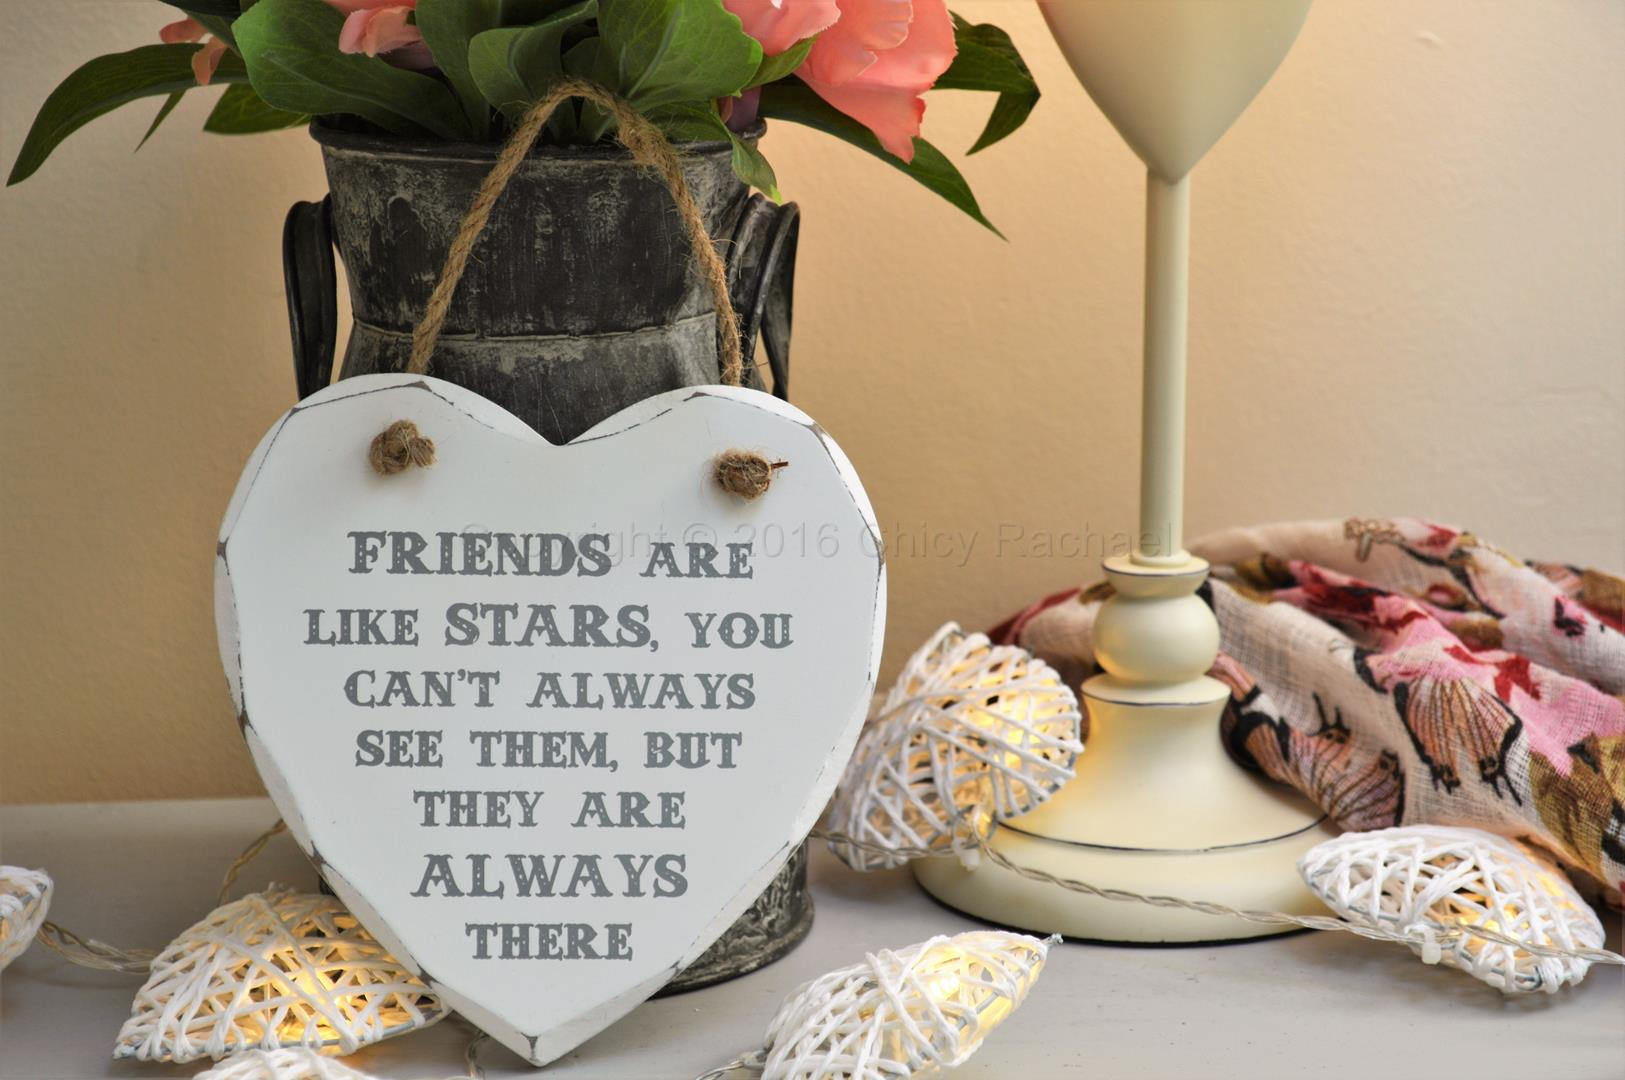 Friends Are Like Stars Heart Plaque Chicy Rachael